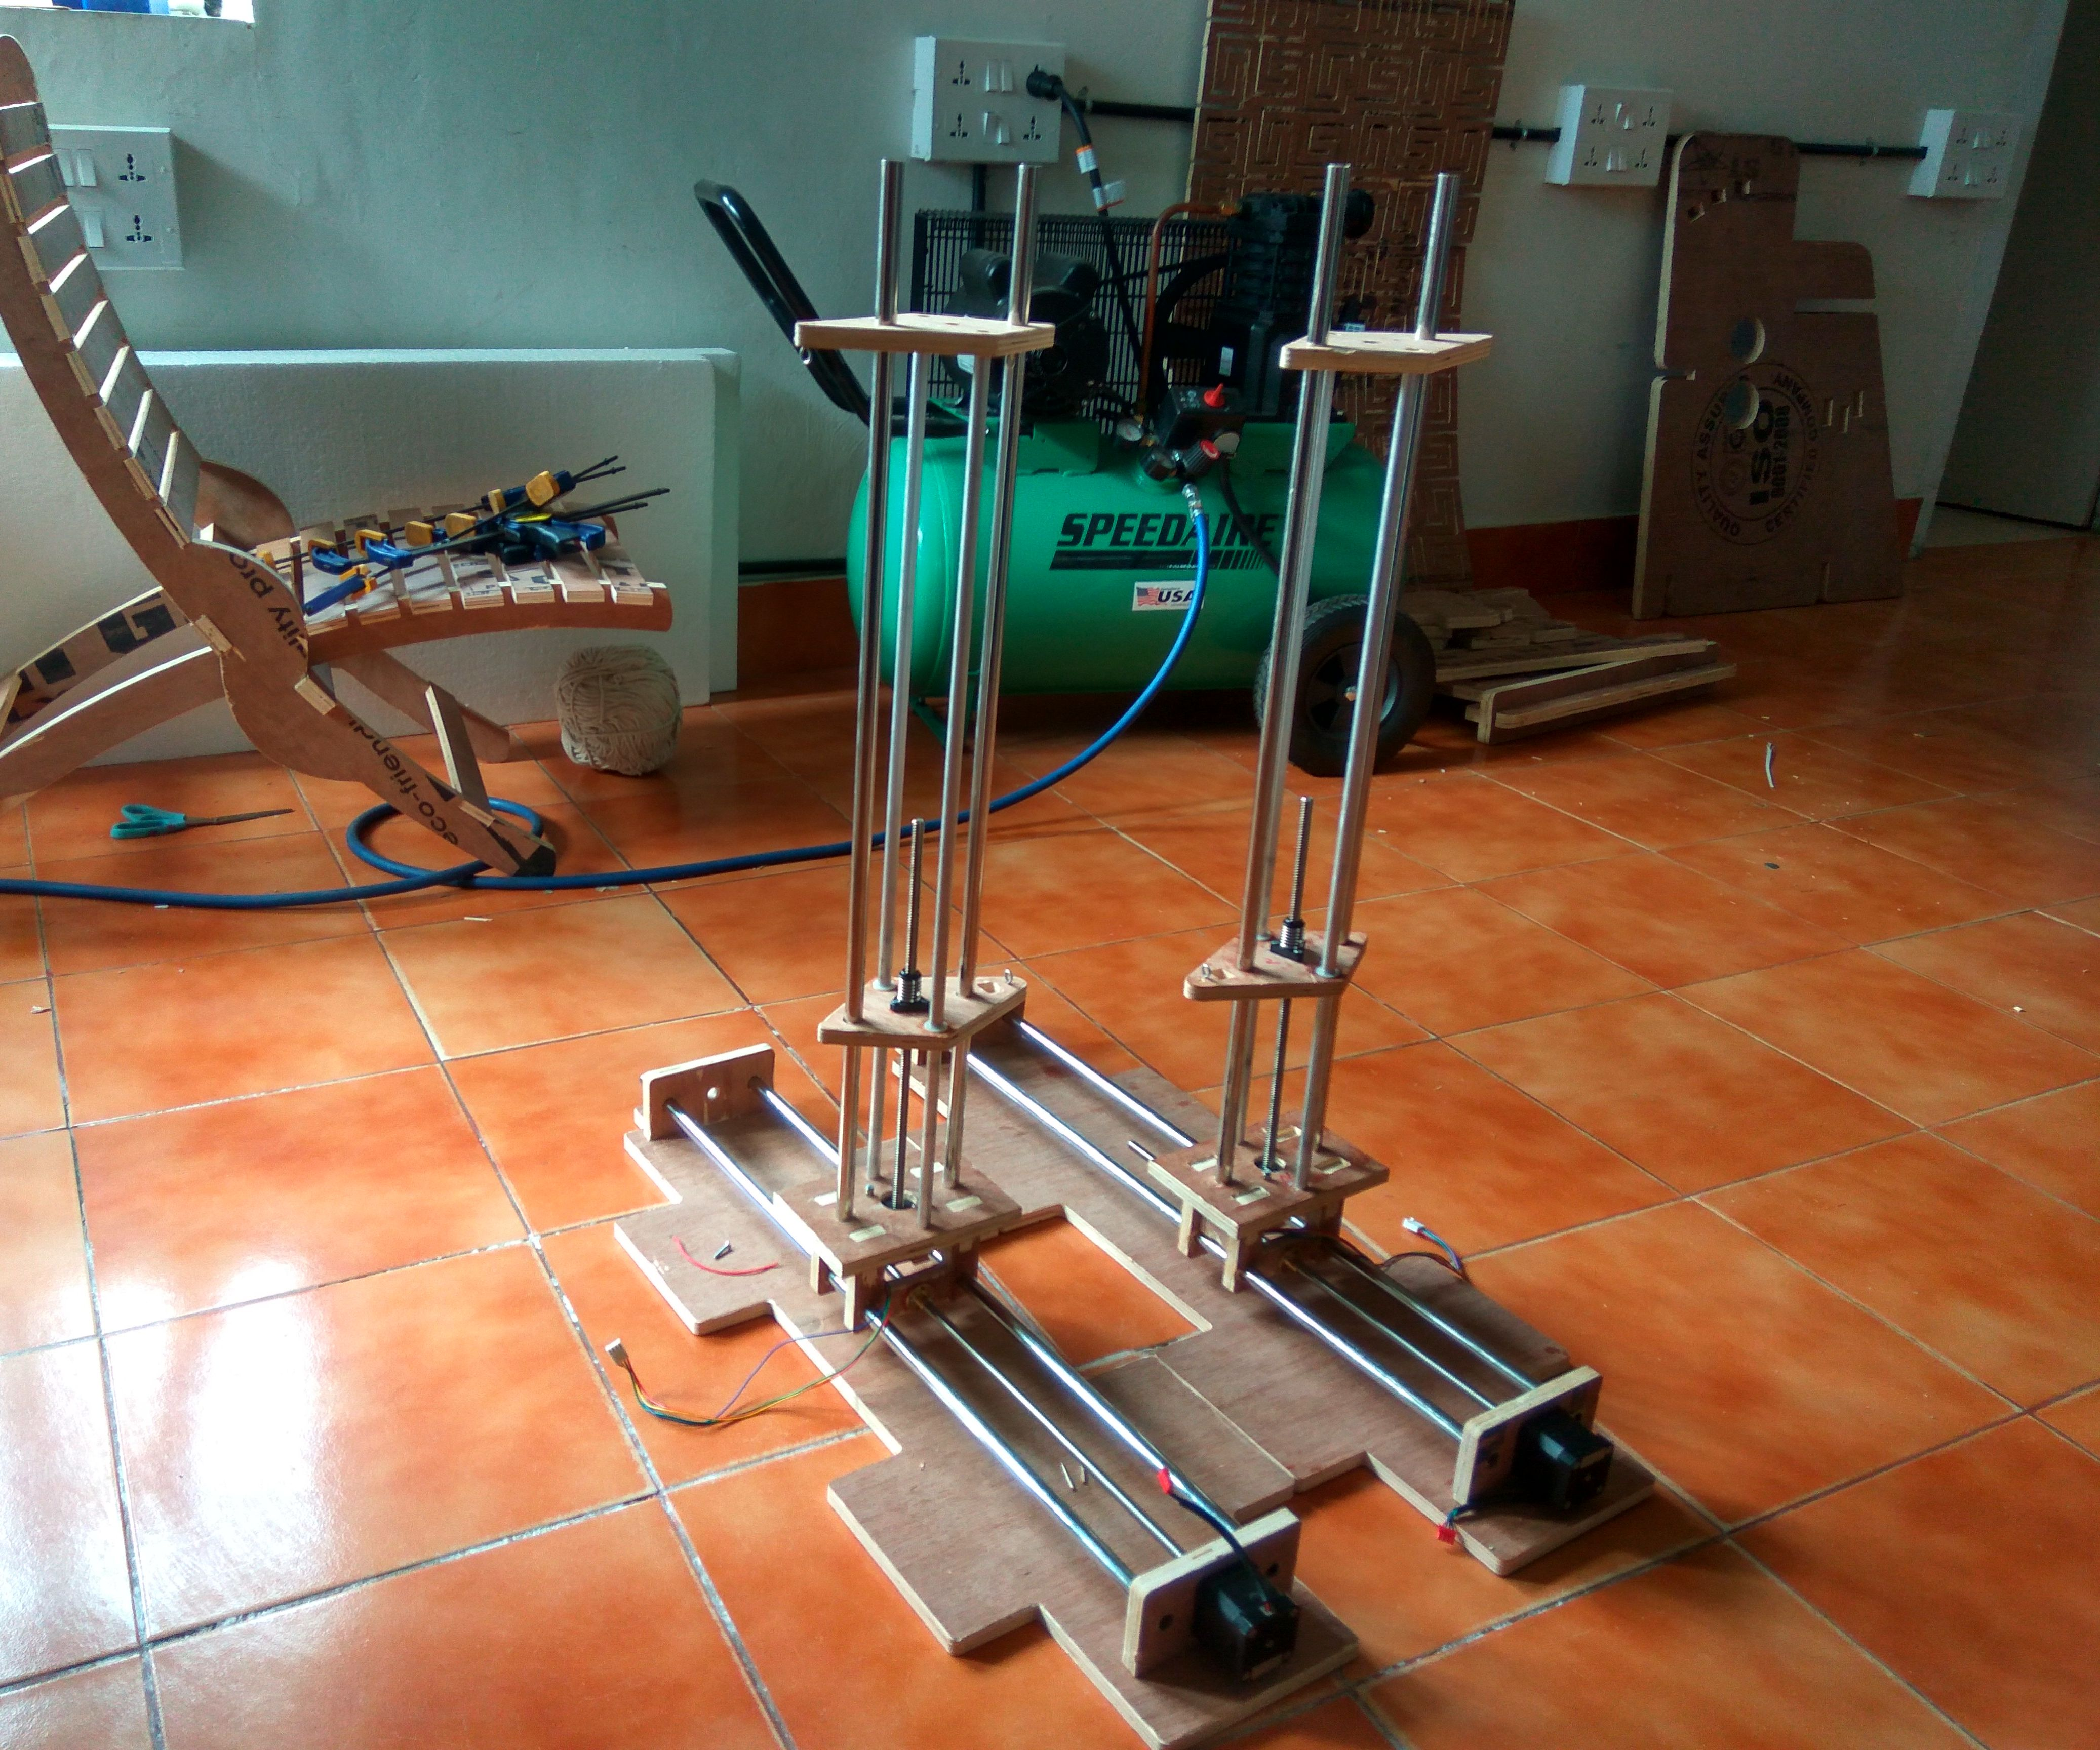 4-Axis CNC Hot-wire Foam Cutter (Arduino+Ramps1 4): 9 Steps (with